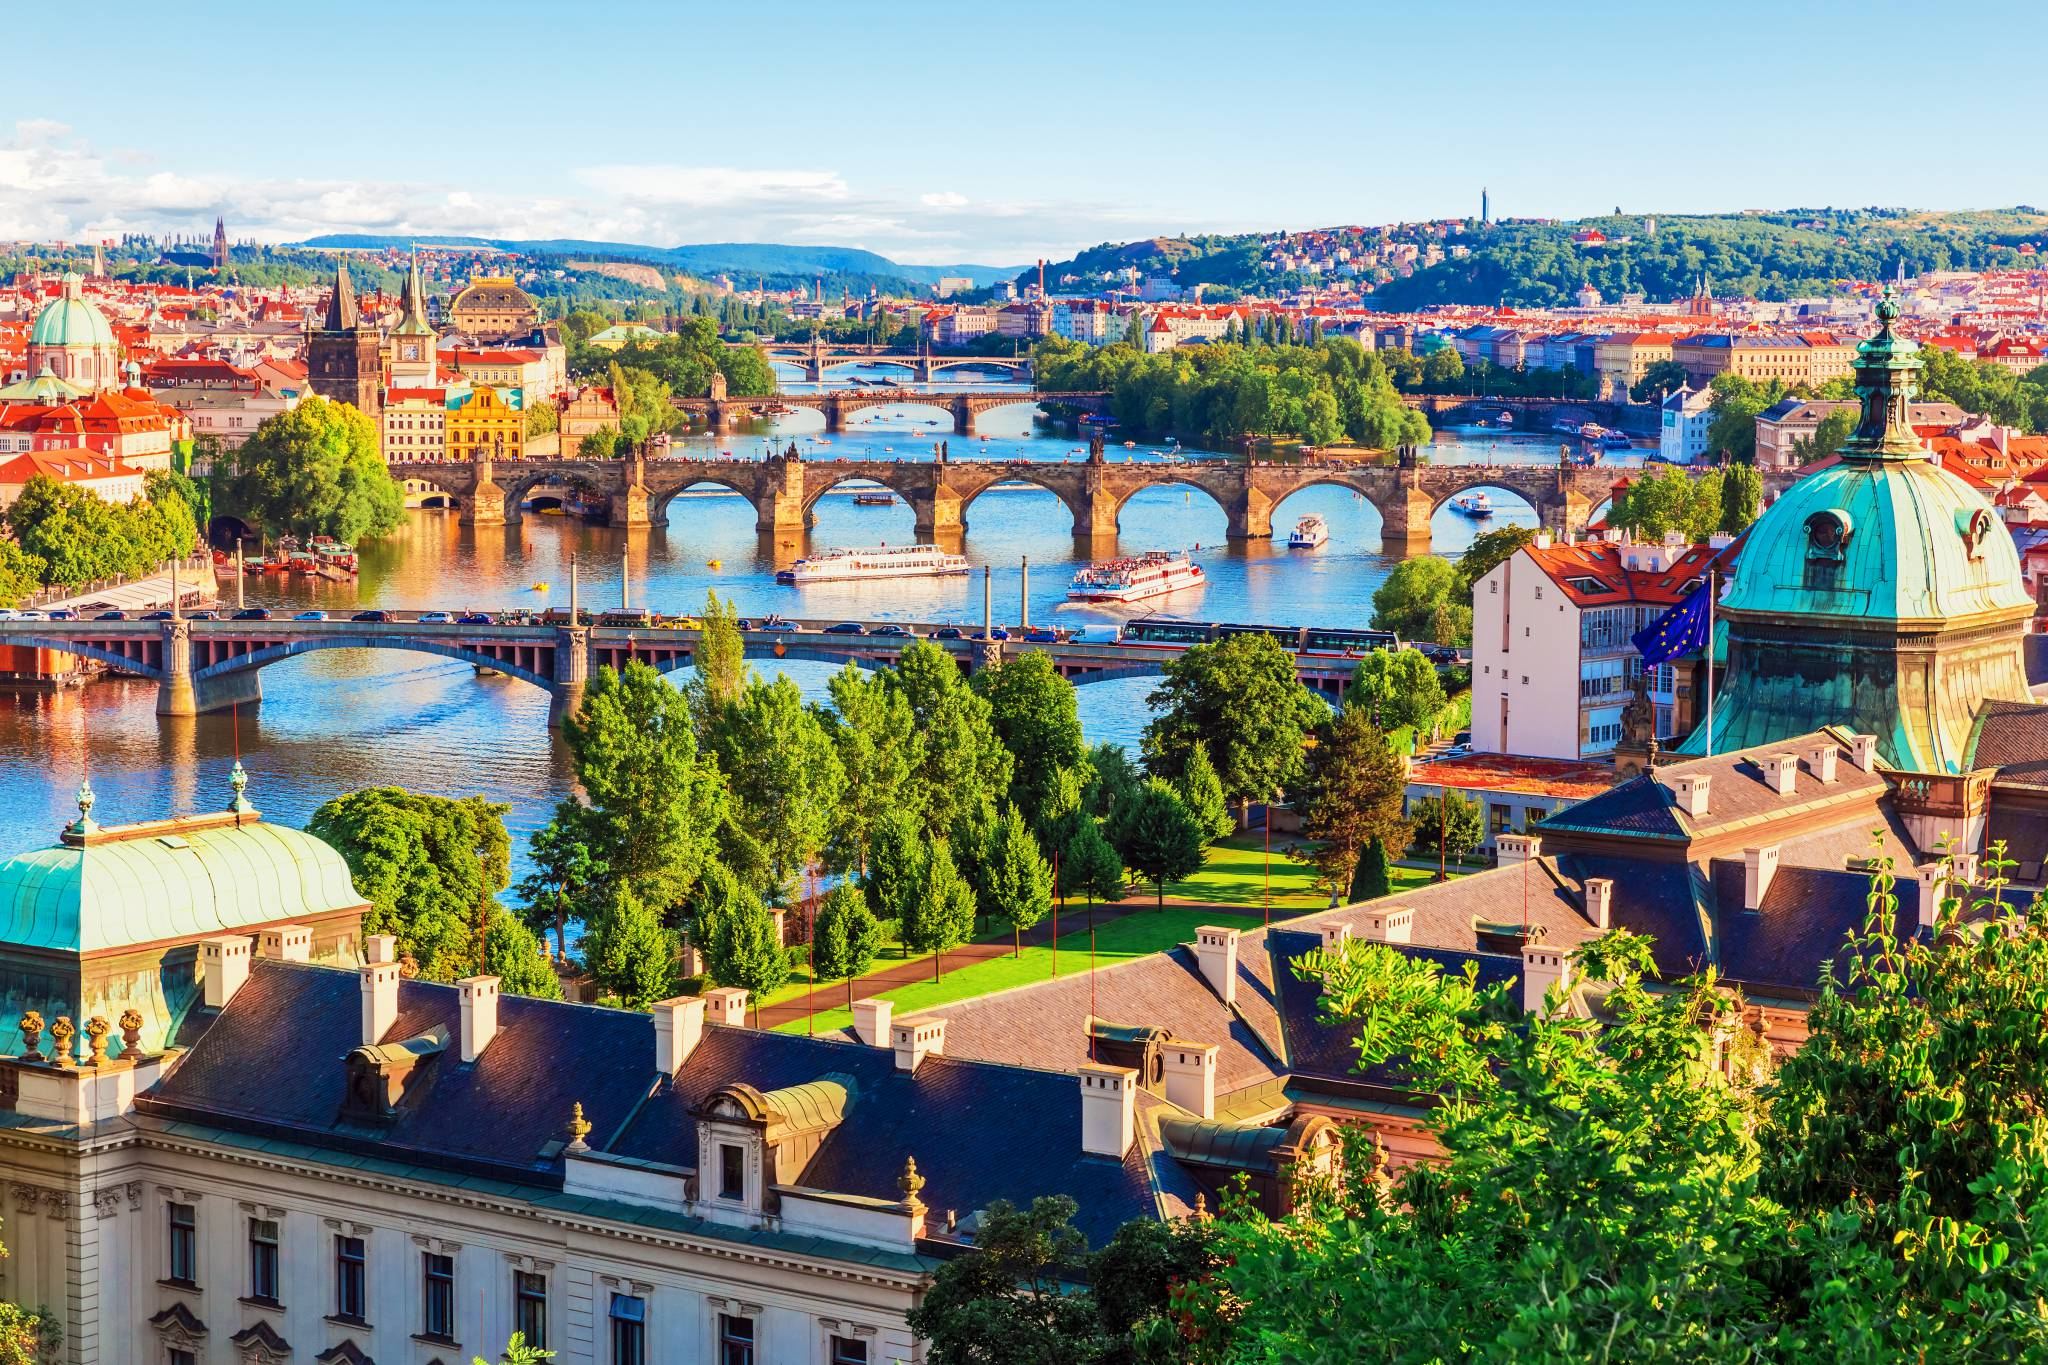 Prague bridges crossing Vltava River. Don't miss!